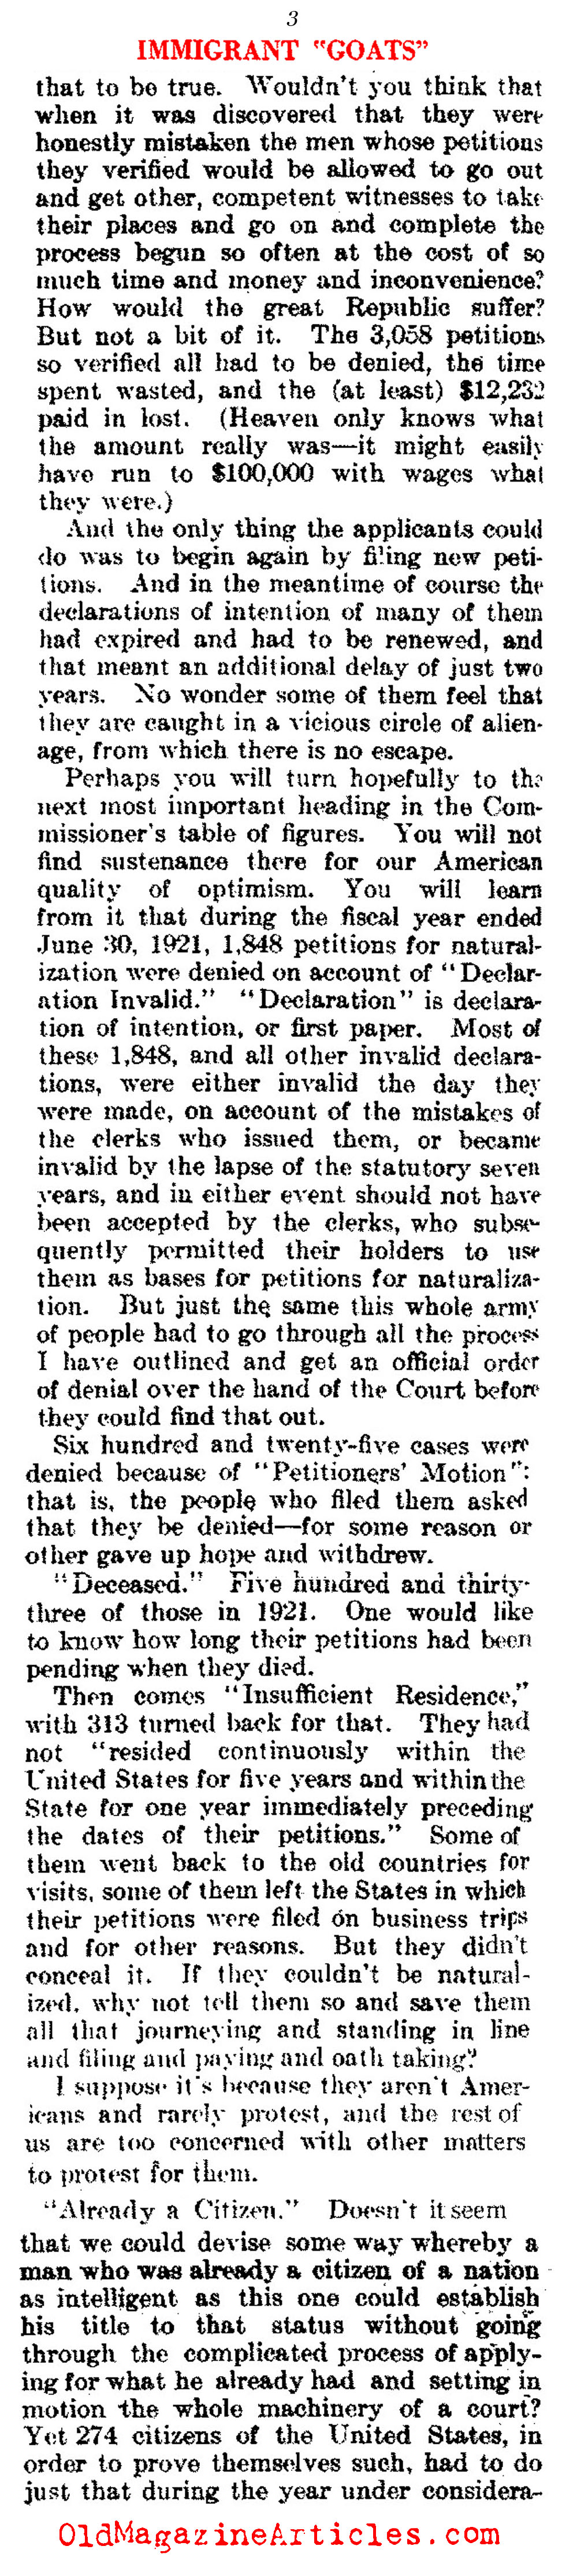 Citizenship Denied  (Literary Digest, 1922)